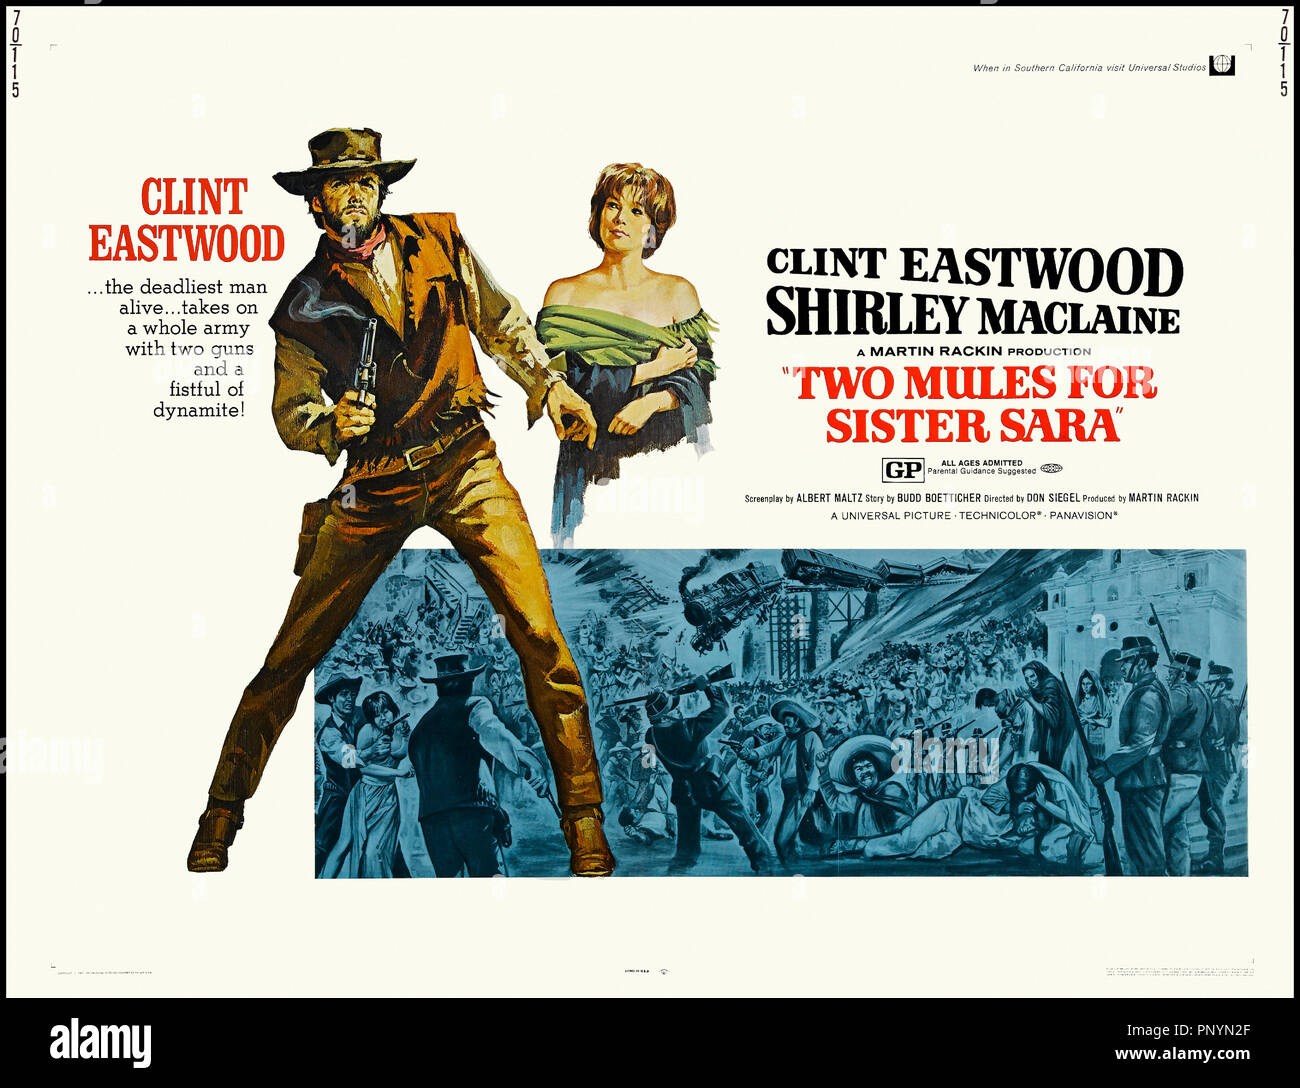 Clint Eastwood Two Mules Sister Sara Stock Photos   Clint Eastwood Two  Mules Sister Sara Stock Images - Alamy c0a37f7ddf5